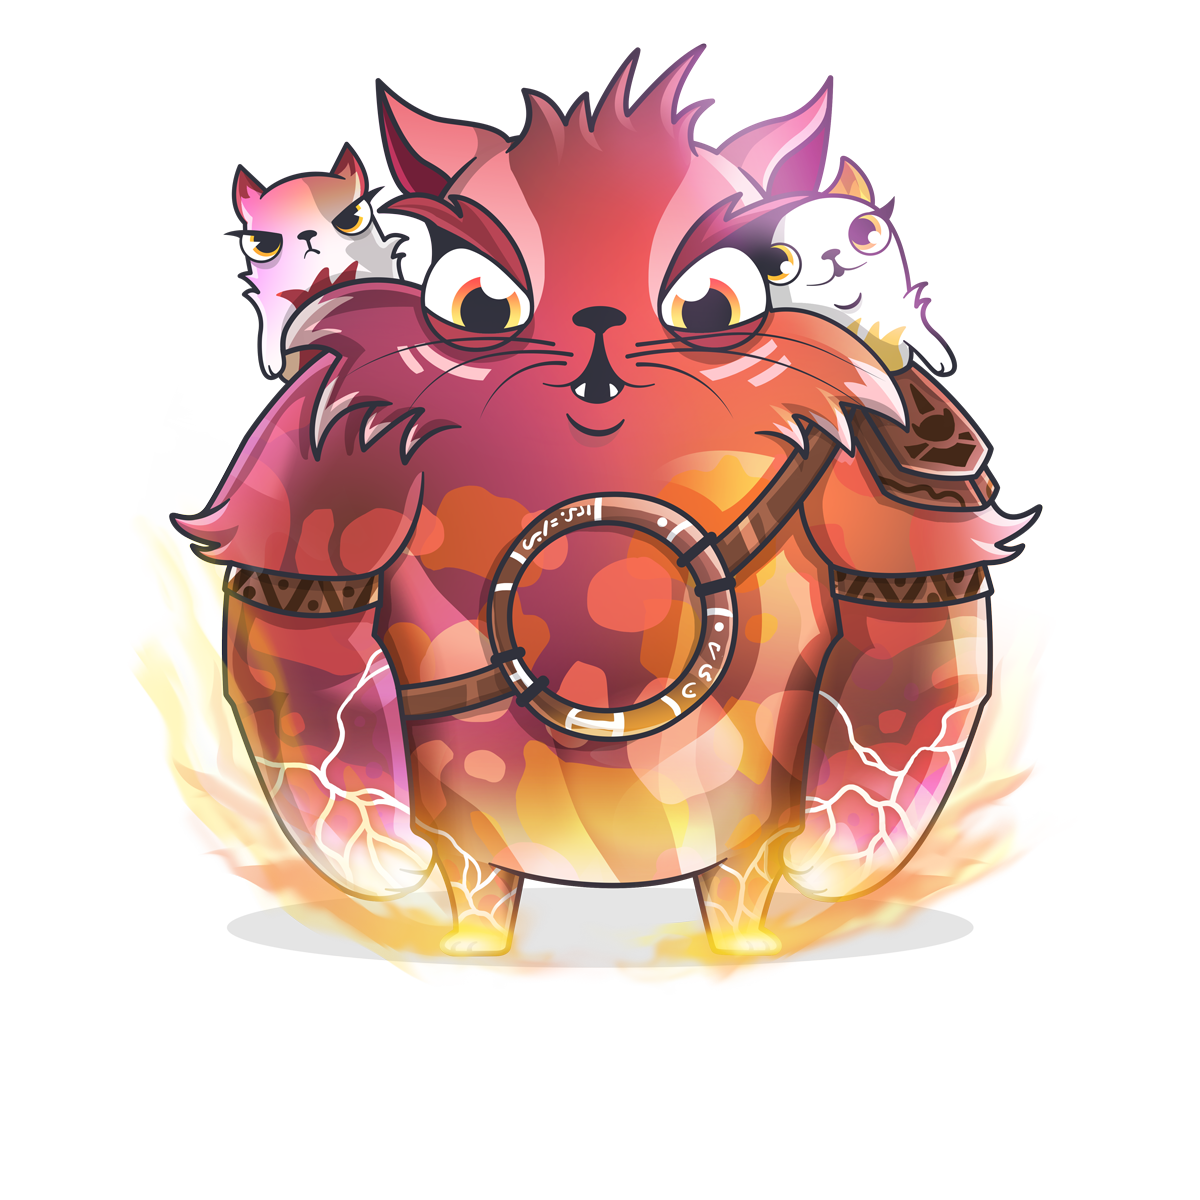 cryptokitty #1813905